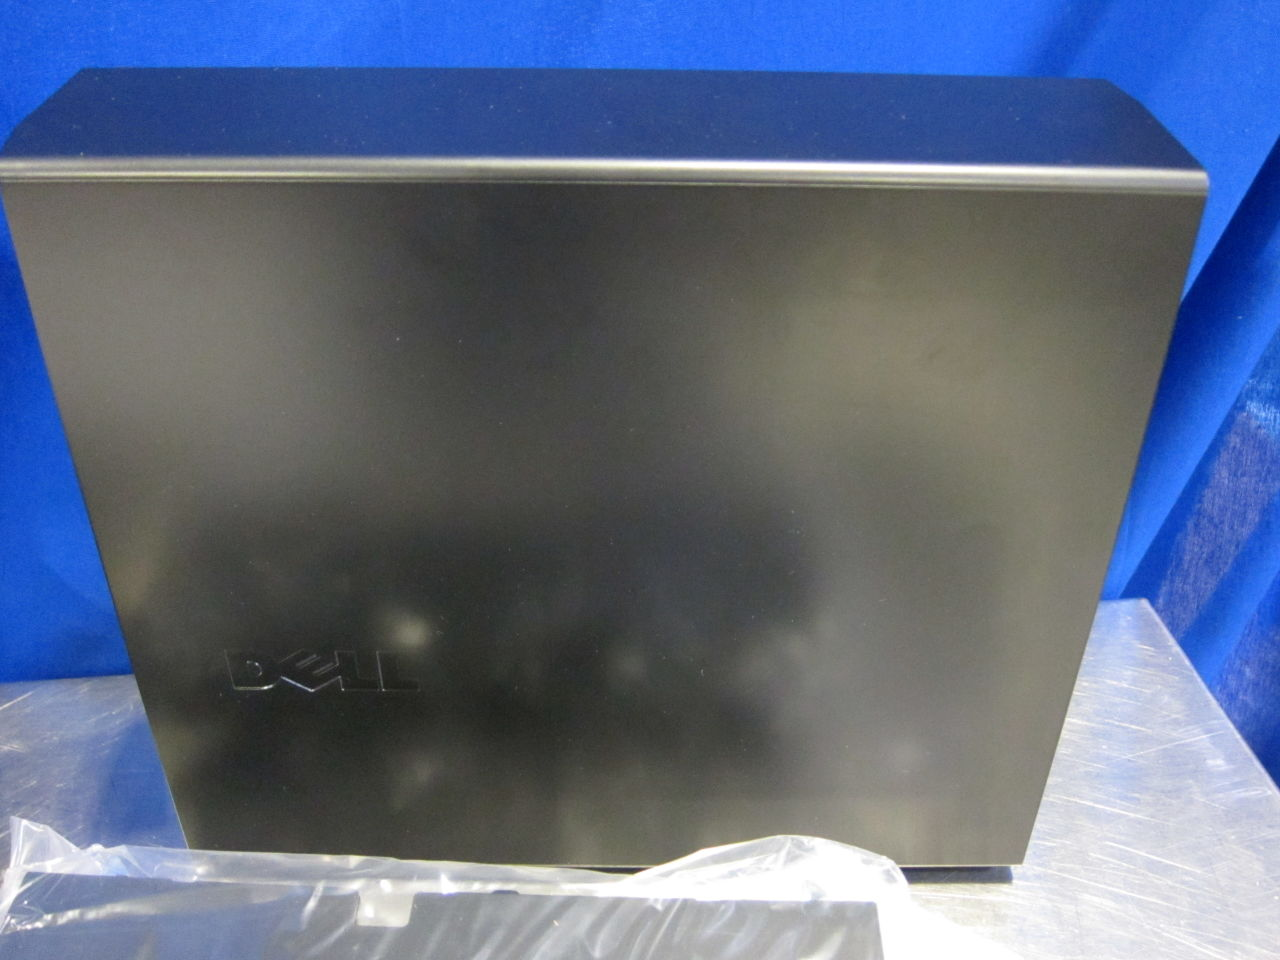 DELL OptiPlex USSF Display Monitor Stand - Lot of 2